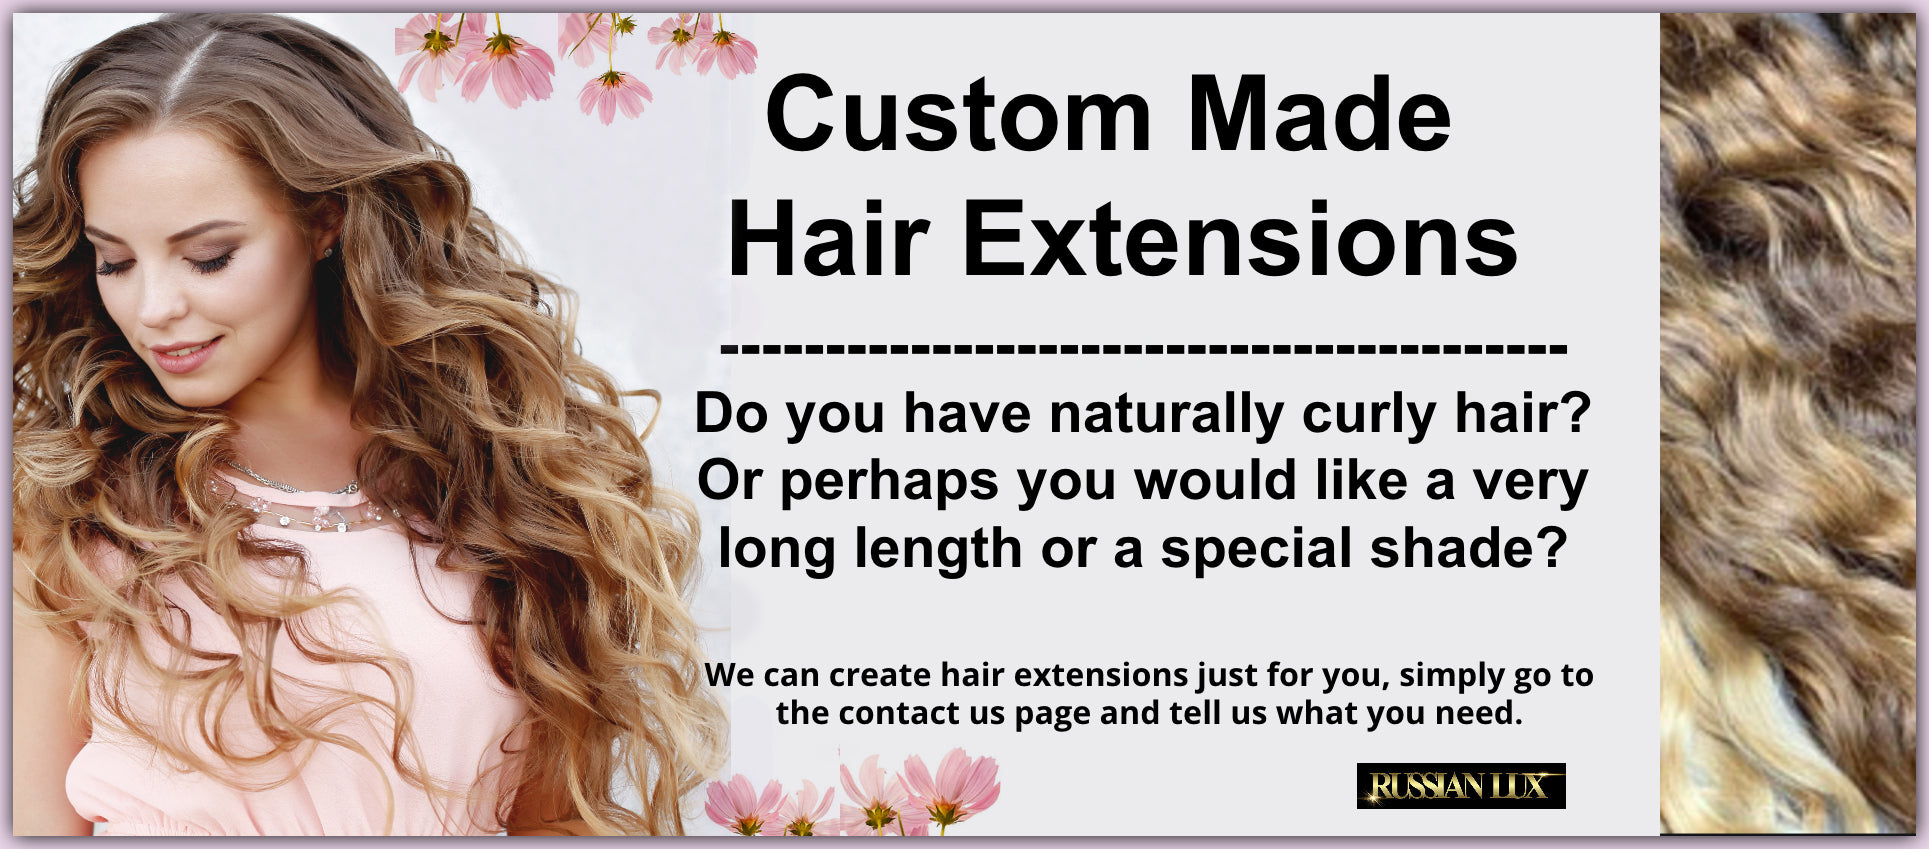 Custom made Russian hair extensions